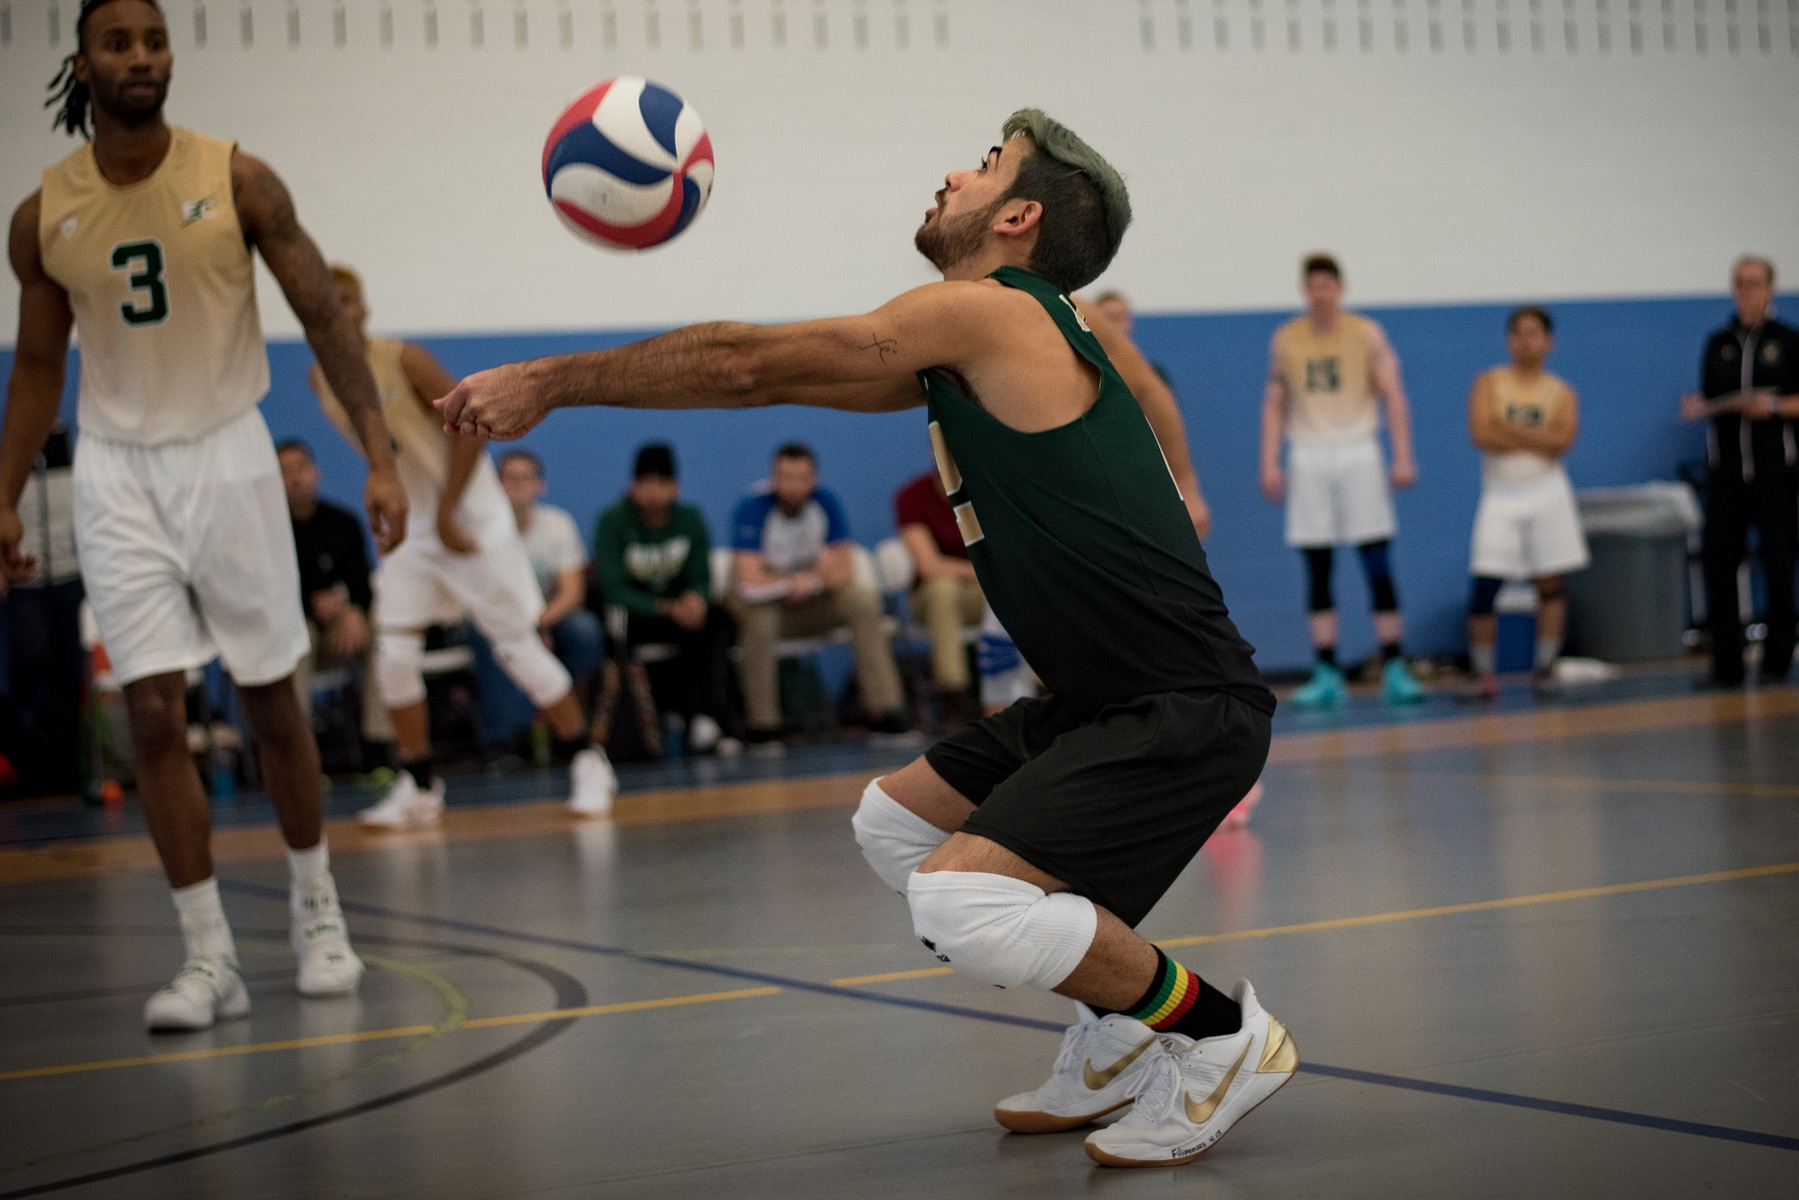 Blazer Men's Volleyball Picks Up Two More Sweeps, Extends Streak To 6